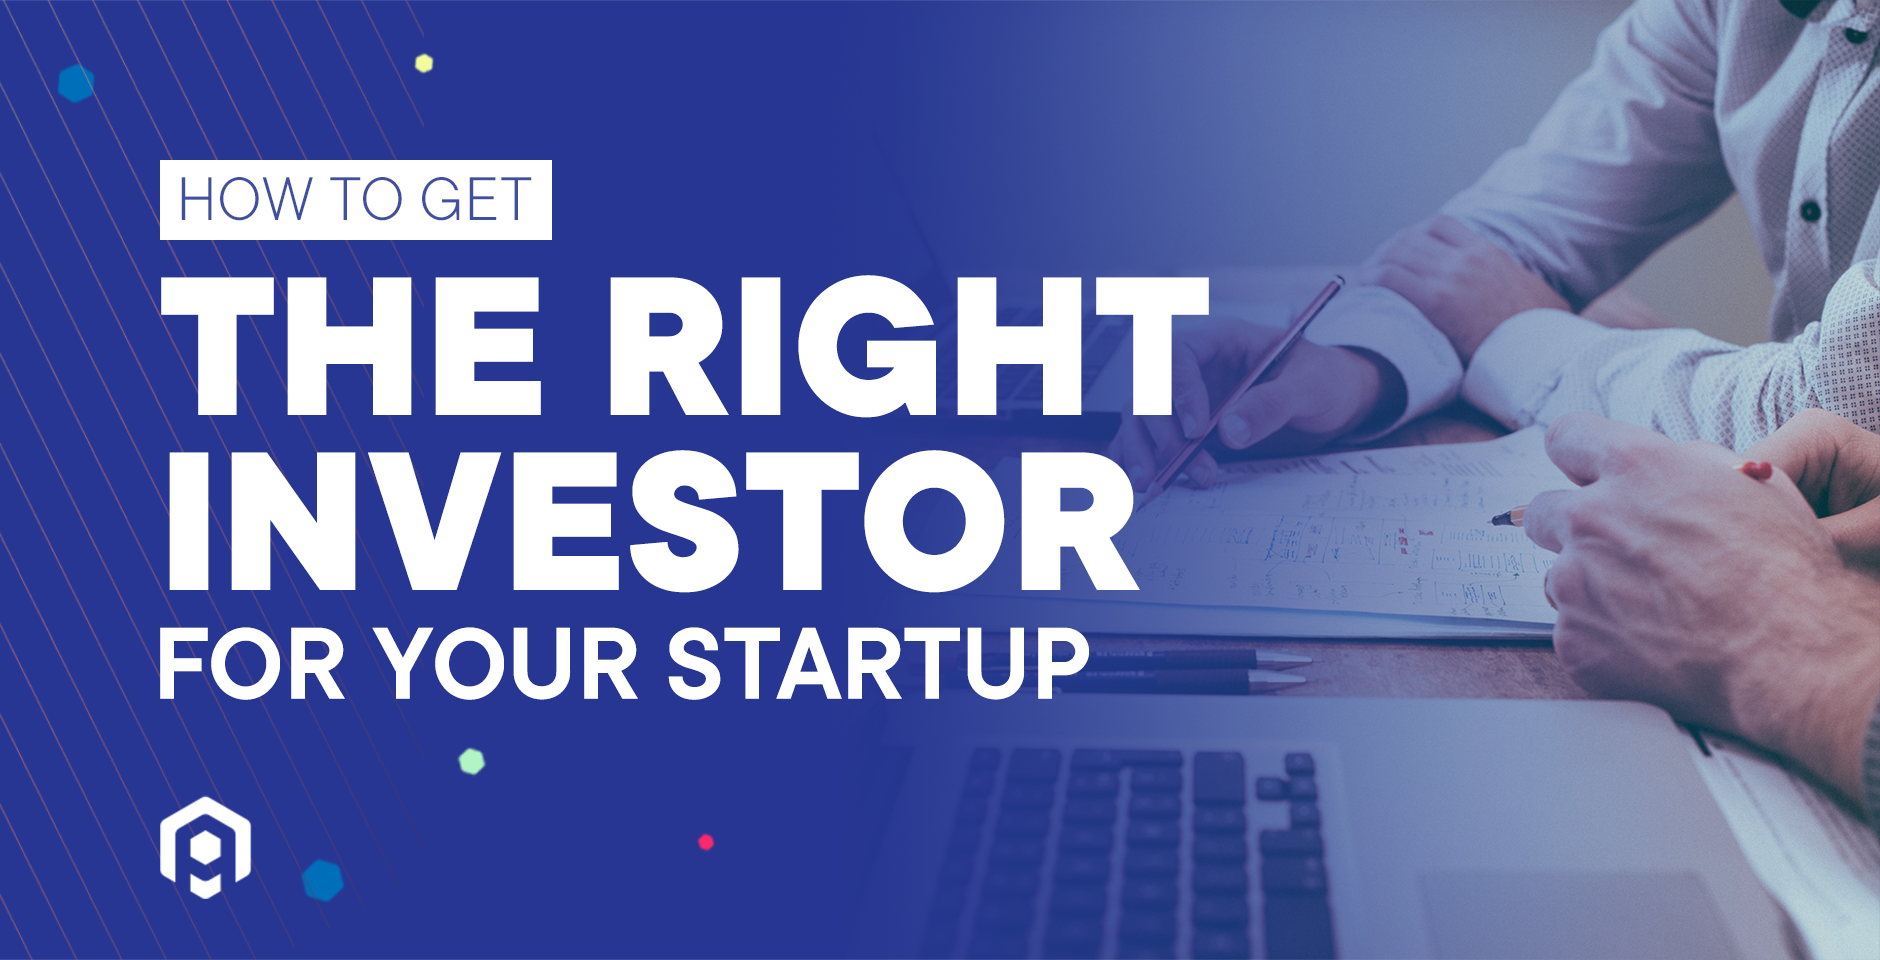 How to get the right investor for your startup